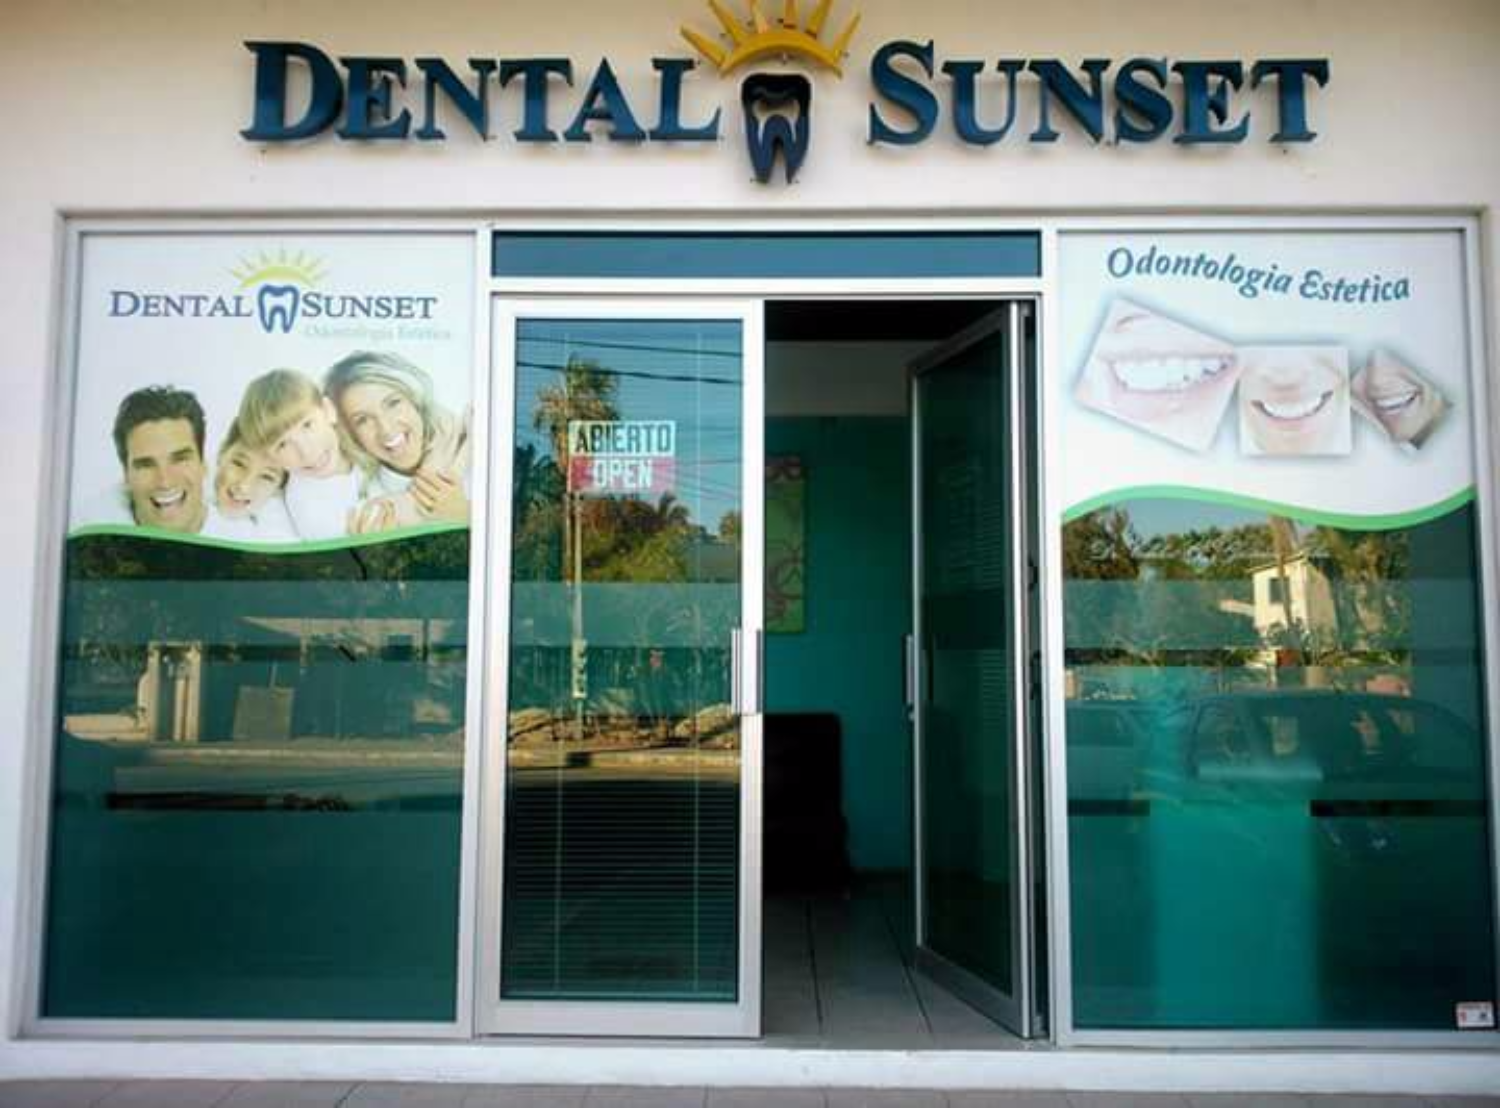 Dental Sunset